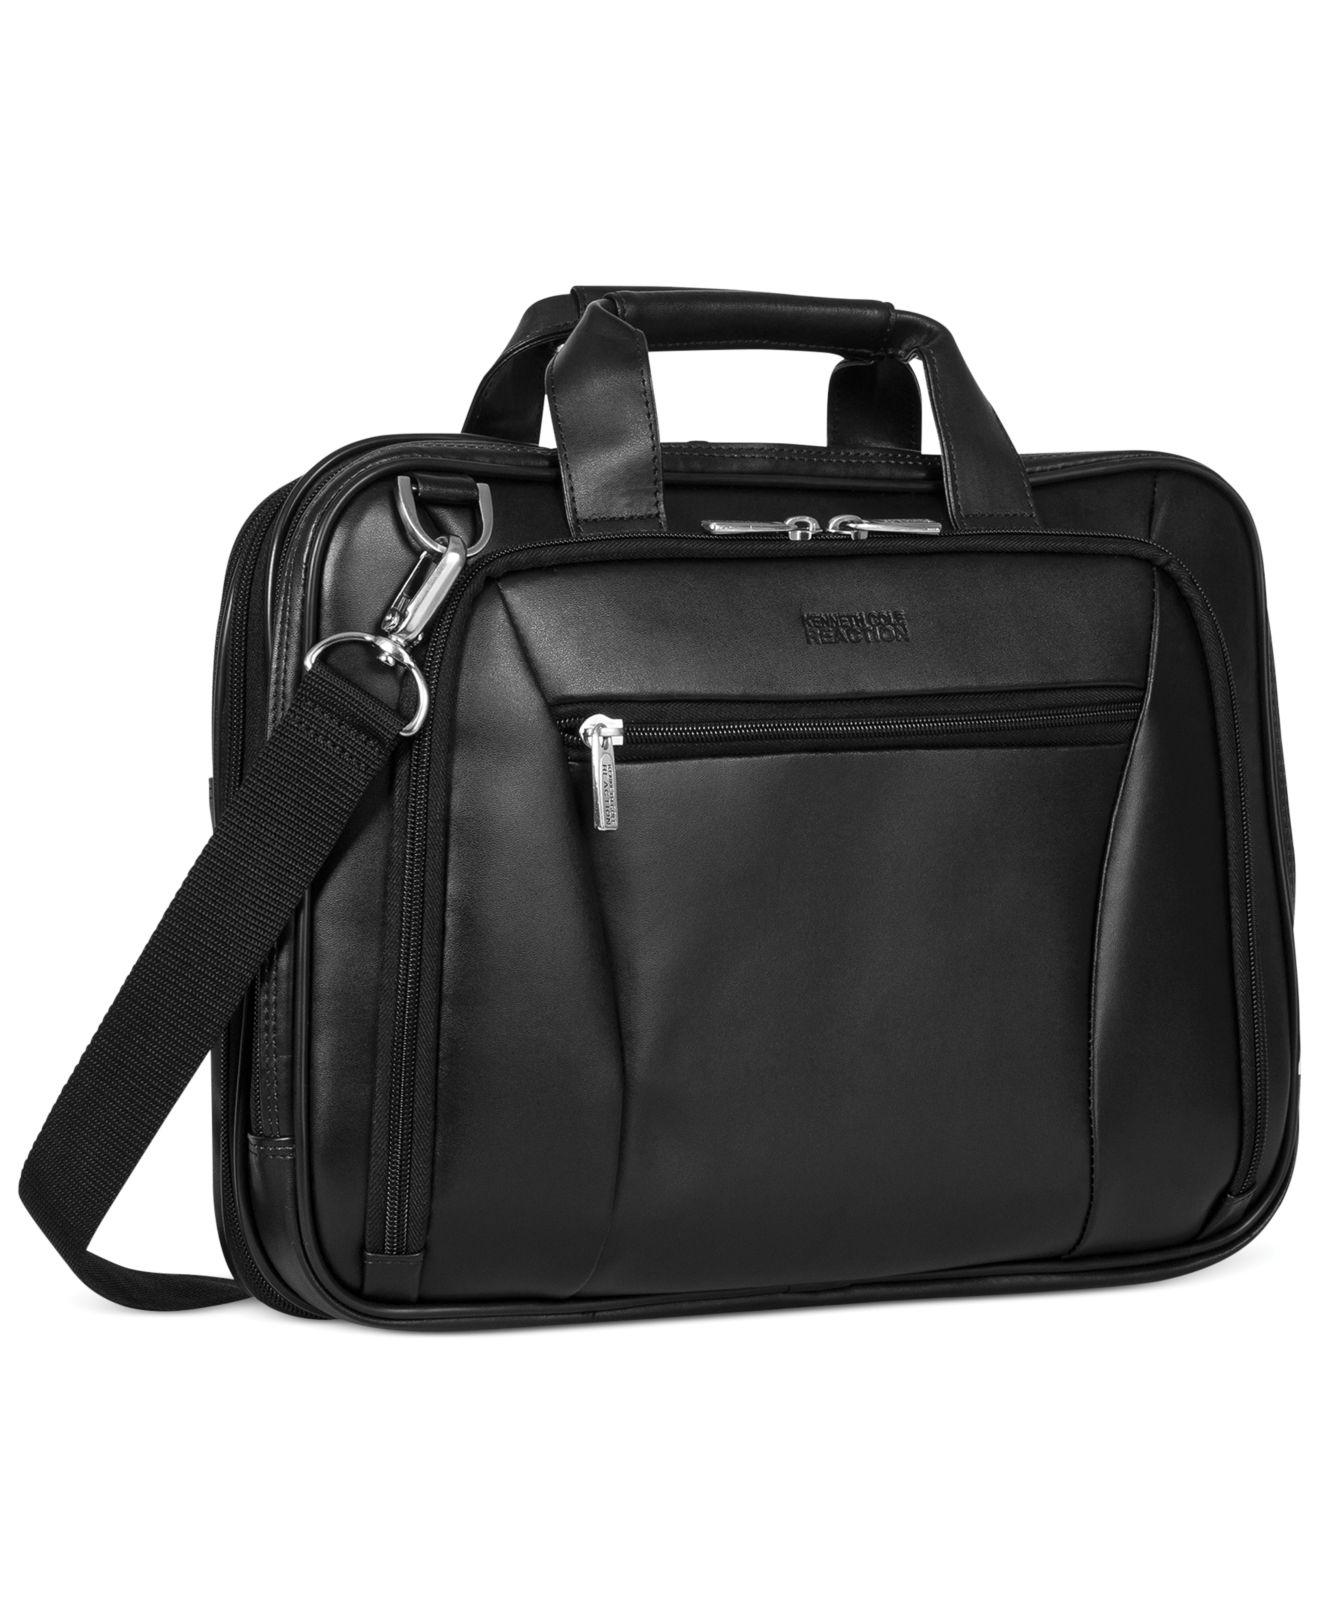 3fca6439adc7 Kenneth Cole Reaction Leather Double Gusset Laptop Brief in Black ...